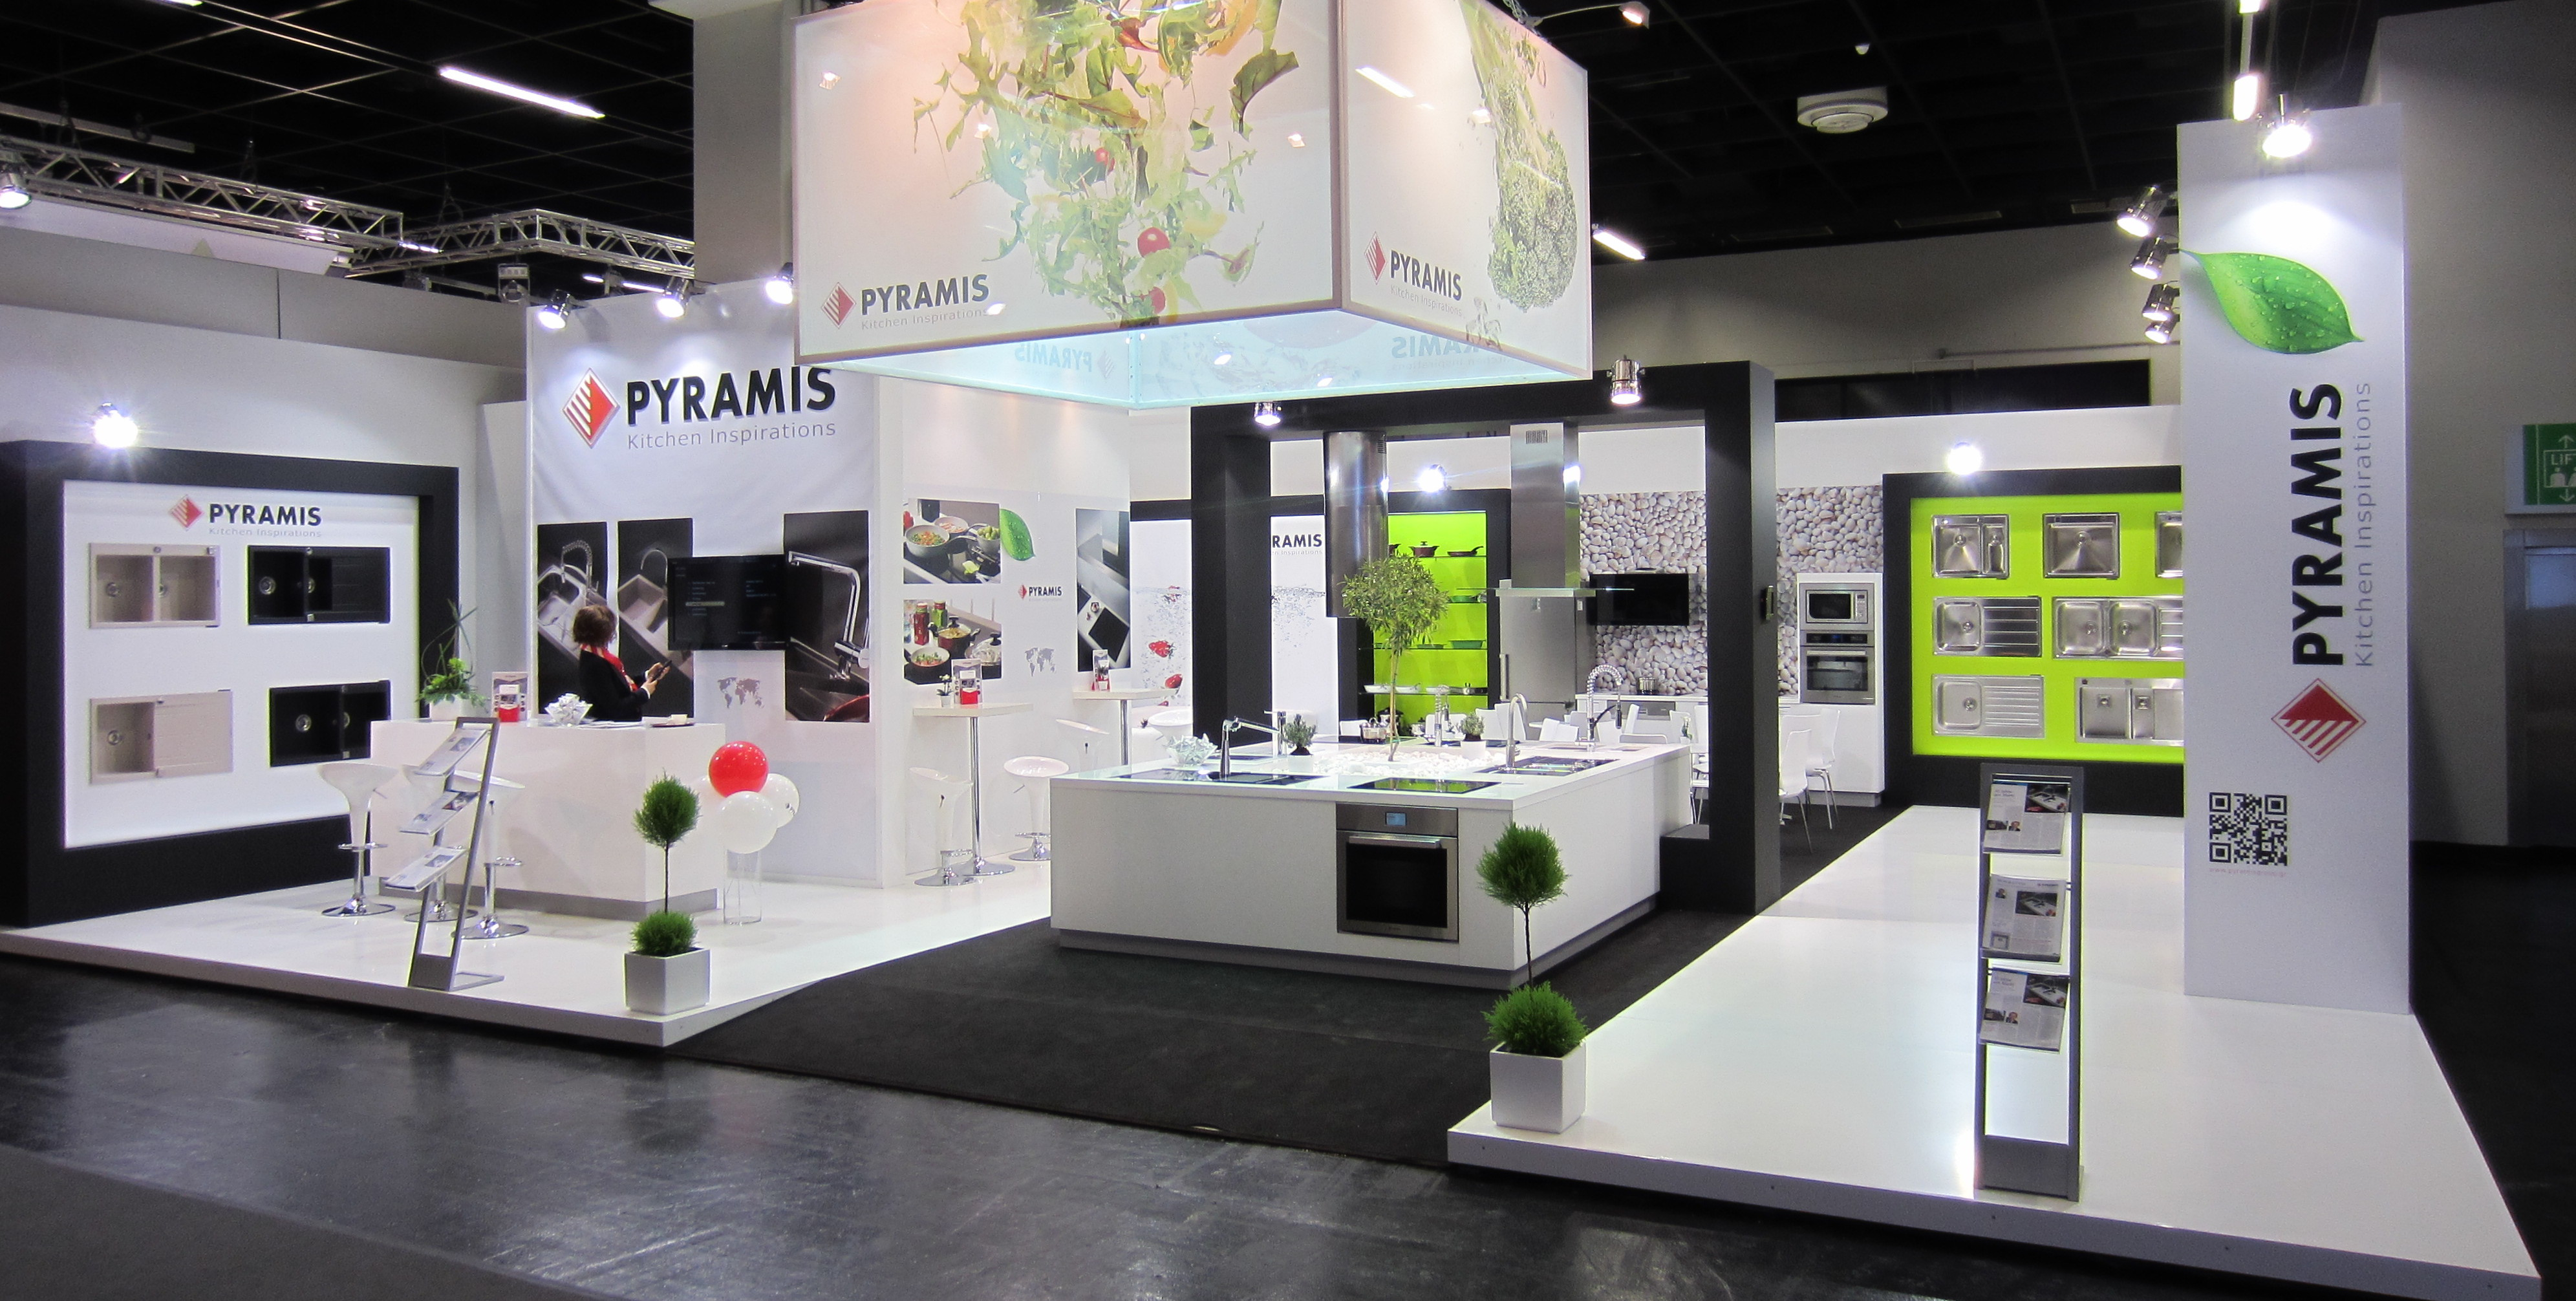 Pyramis metallourgia a e participation at living kitchen 2013 exhibition in cologne germany - Kitchen design expo ...